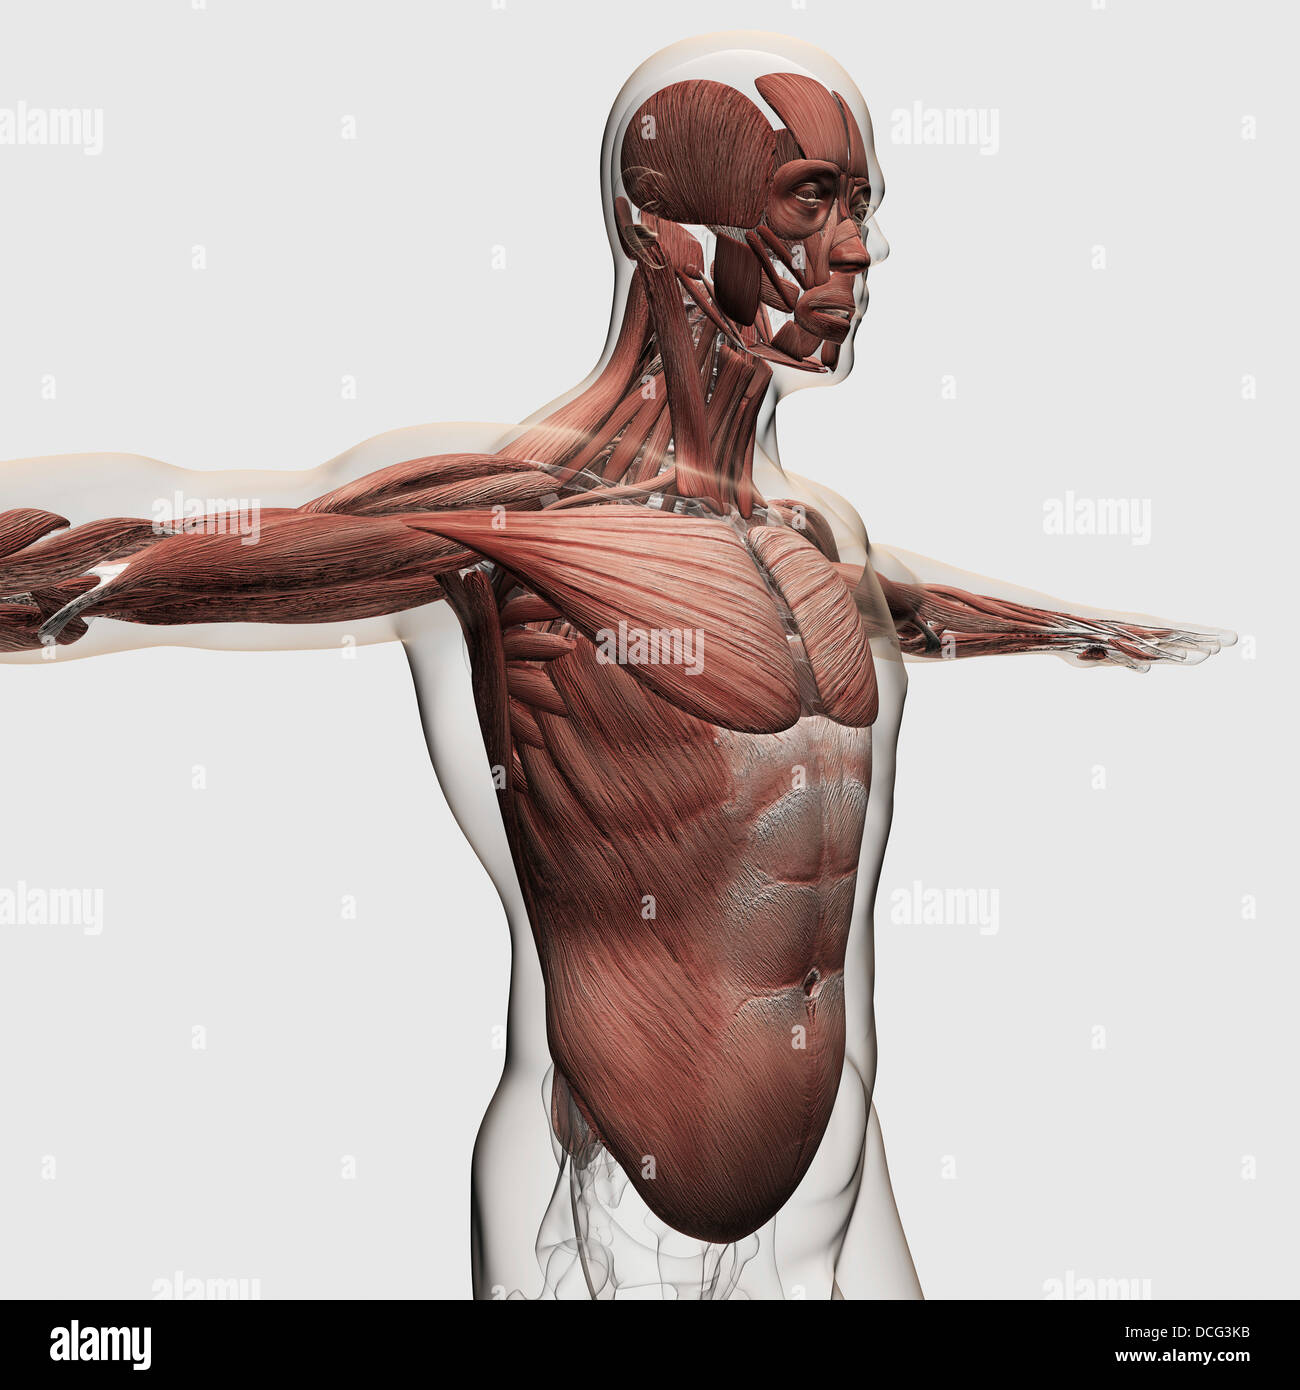 Anatomy Of Male Muscles In Upper Body Side View Stock Photo